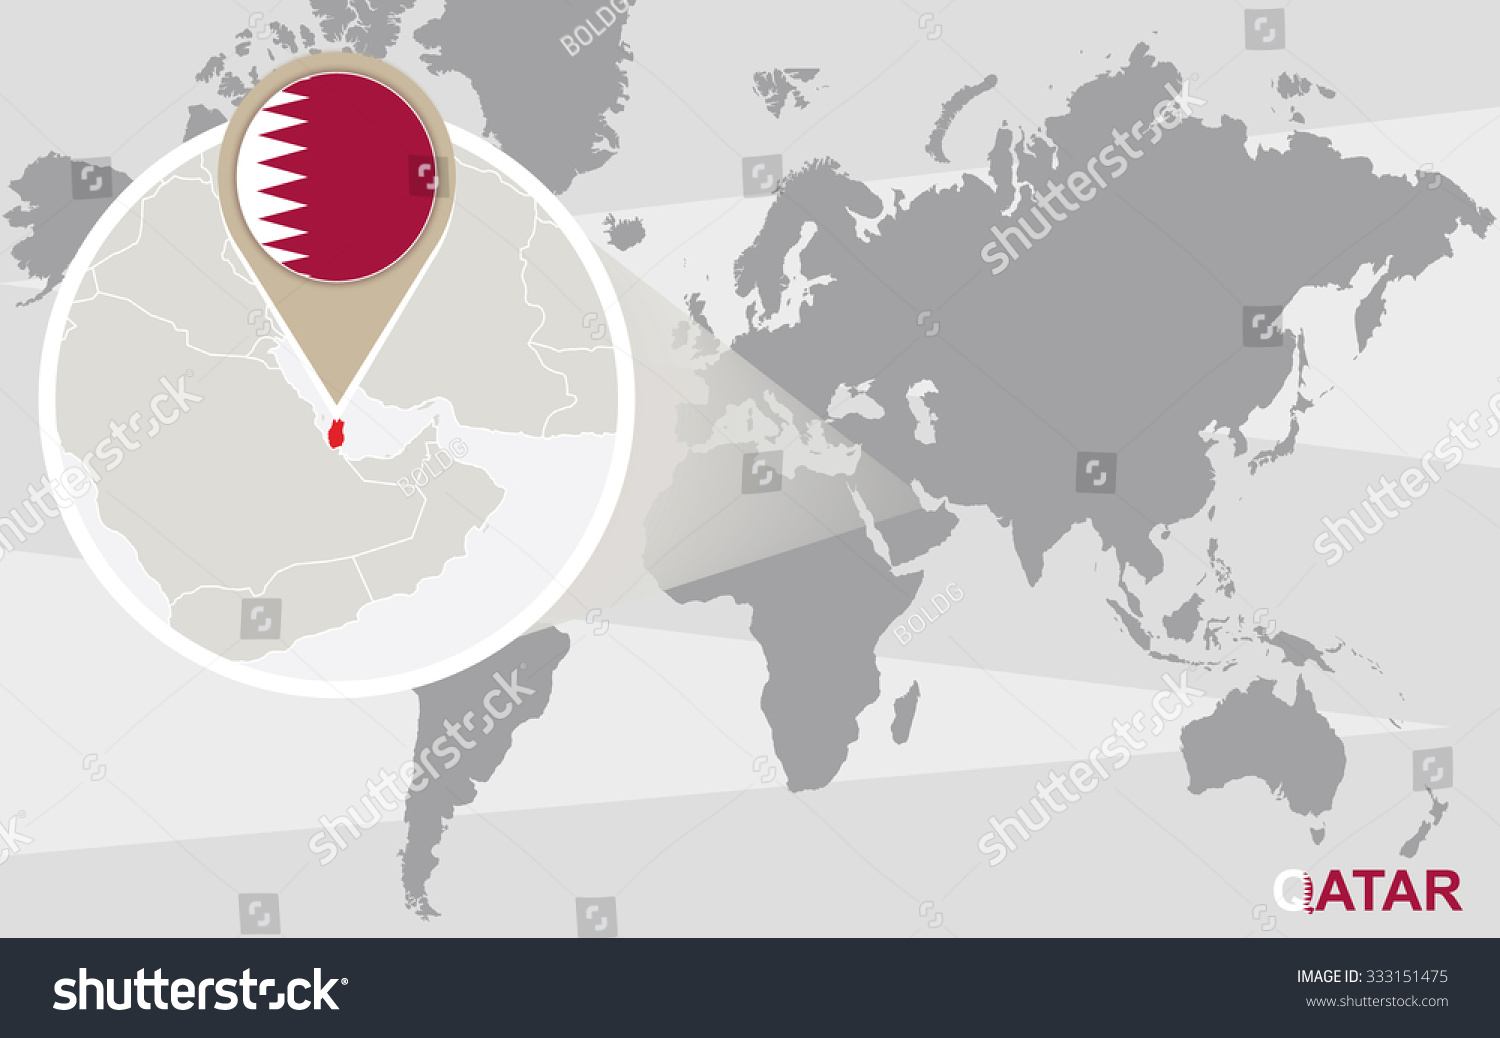 world map with magnified qatar qatar flag and map rasterized copy